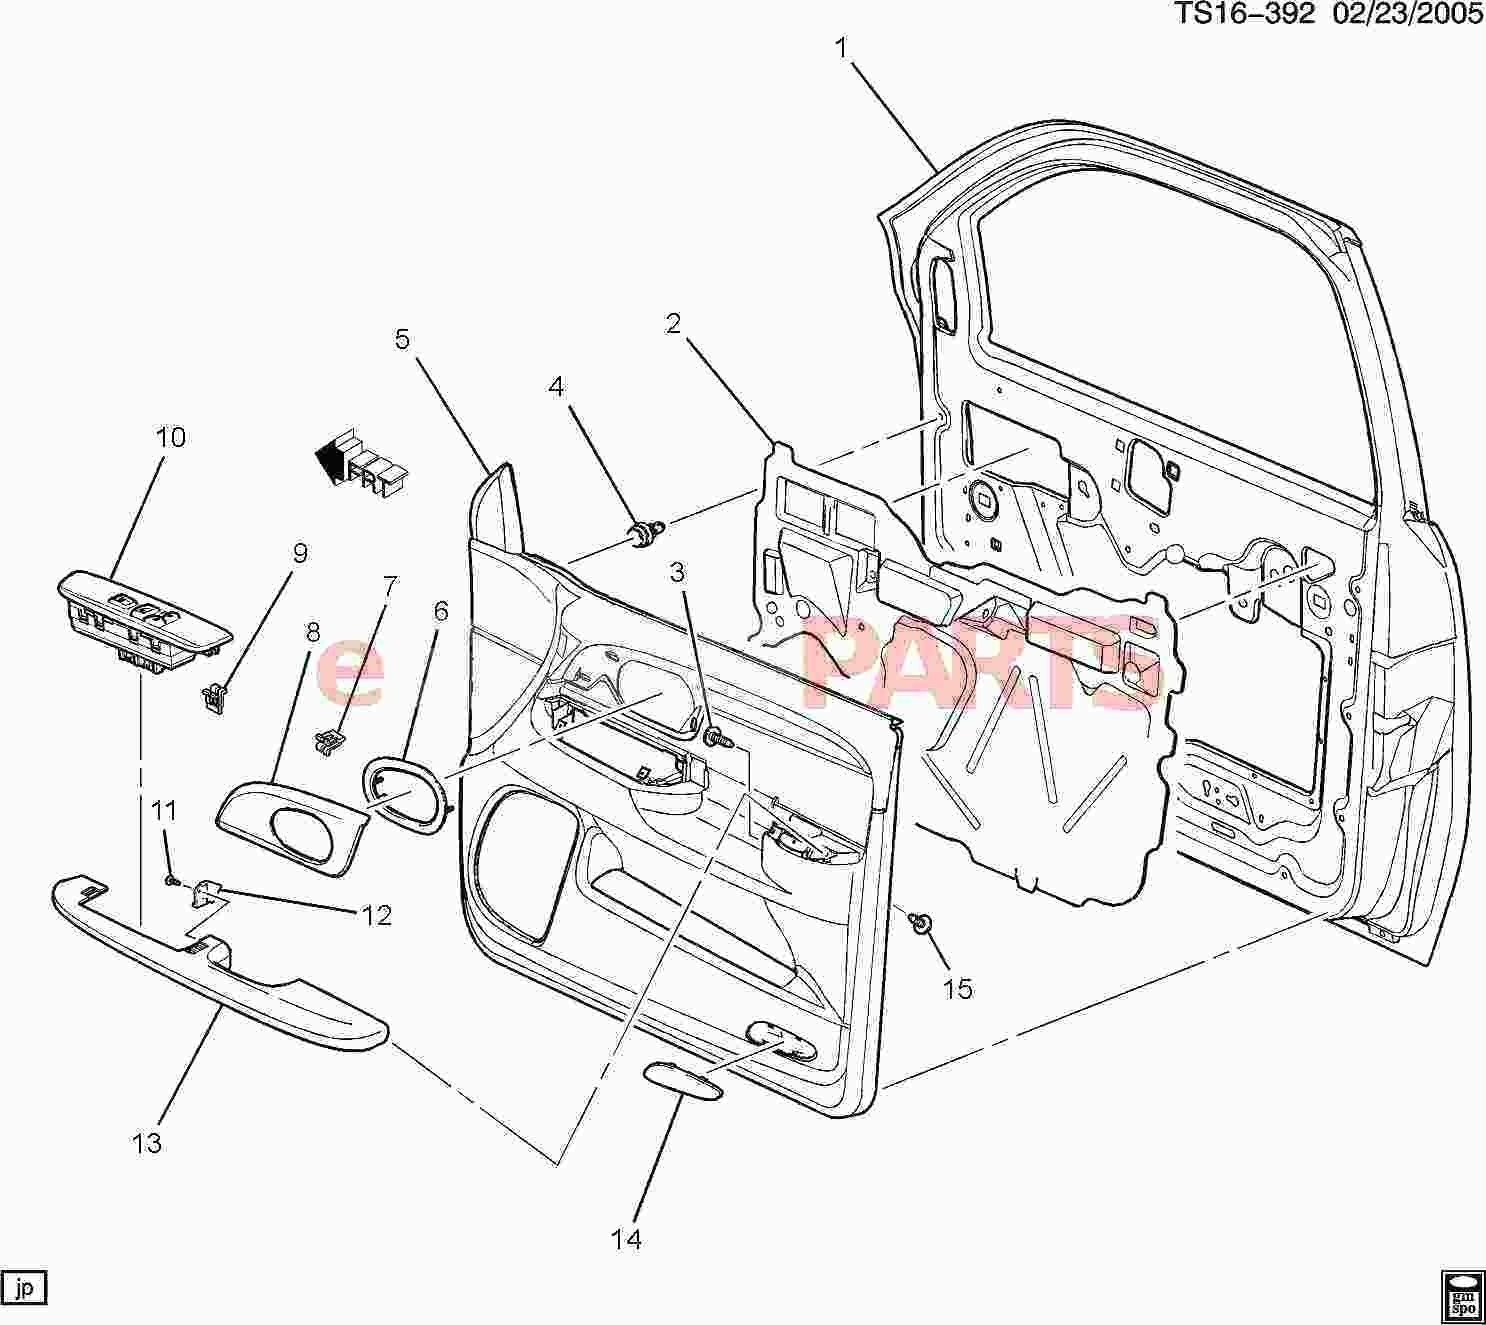 Luxury Under The Hood Of A Car Labeled Images - Wiring Diagram Ideas ...